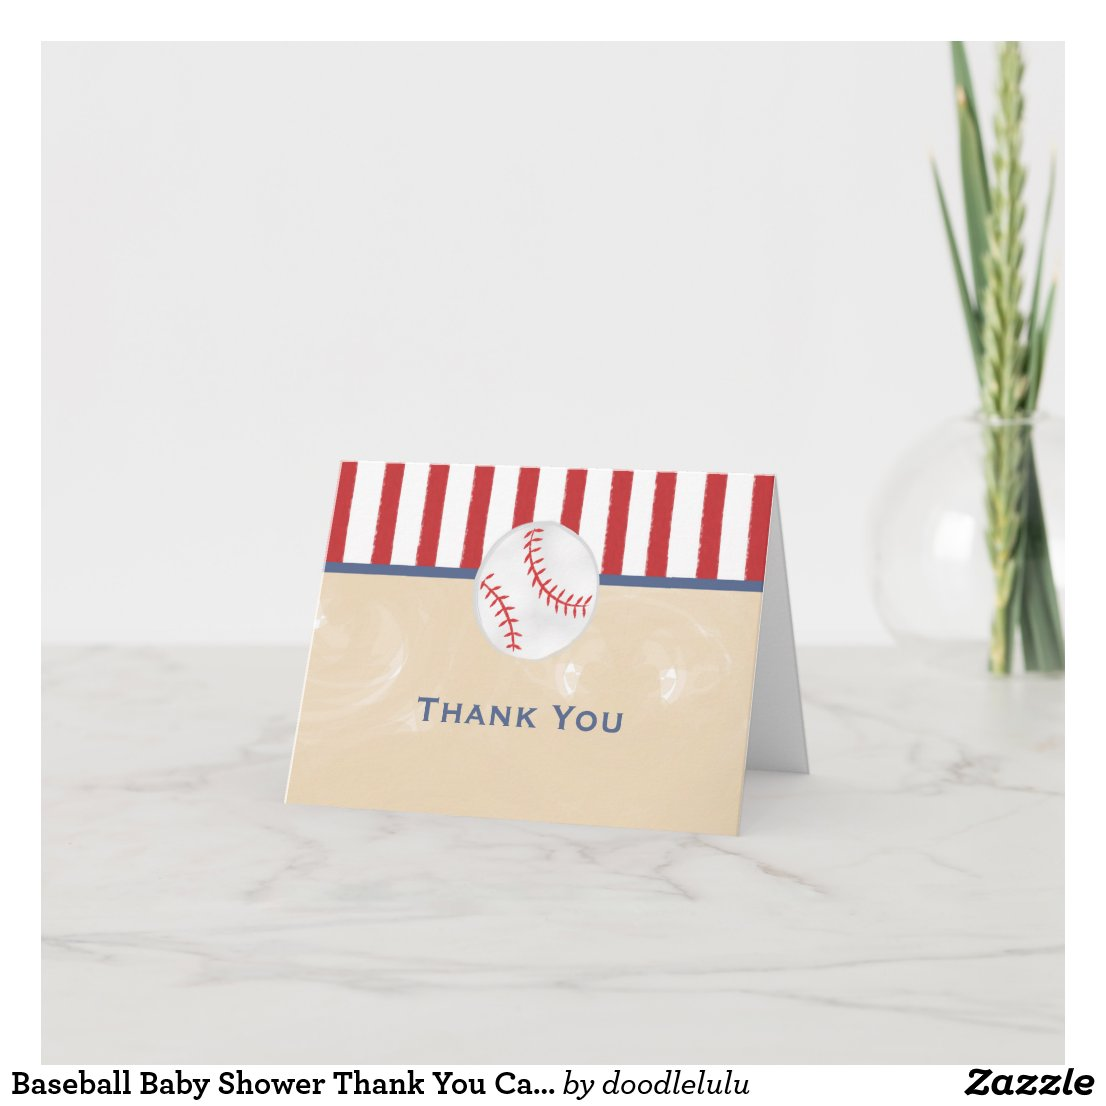 Baseball Baby Shower Thank You Card